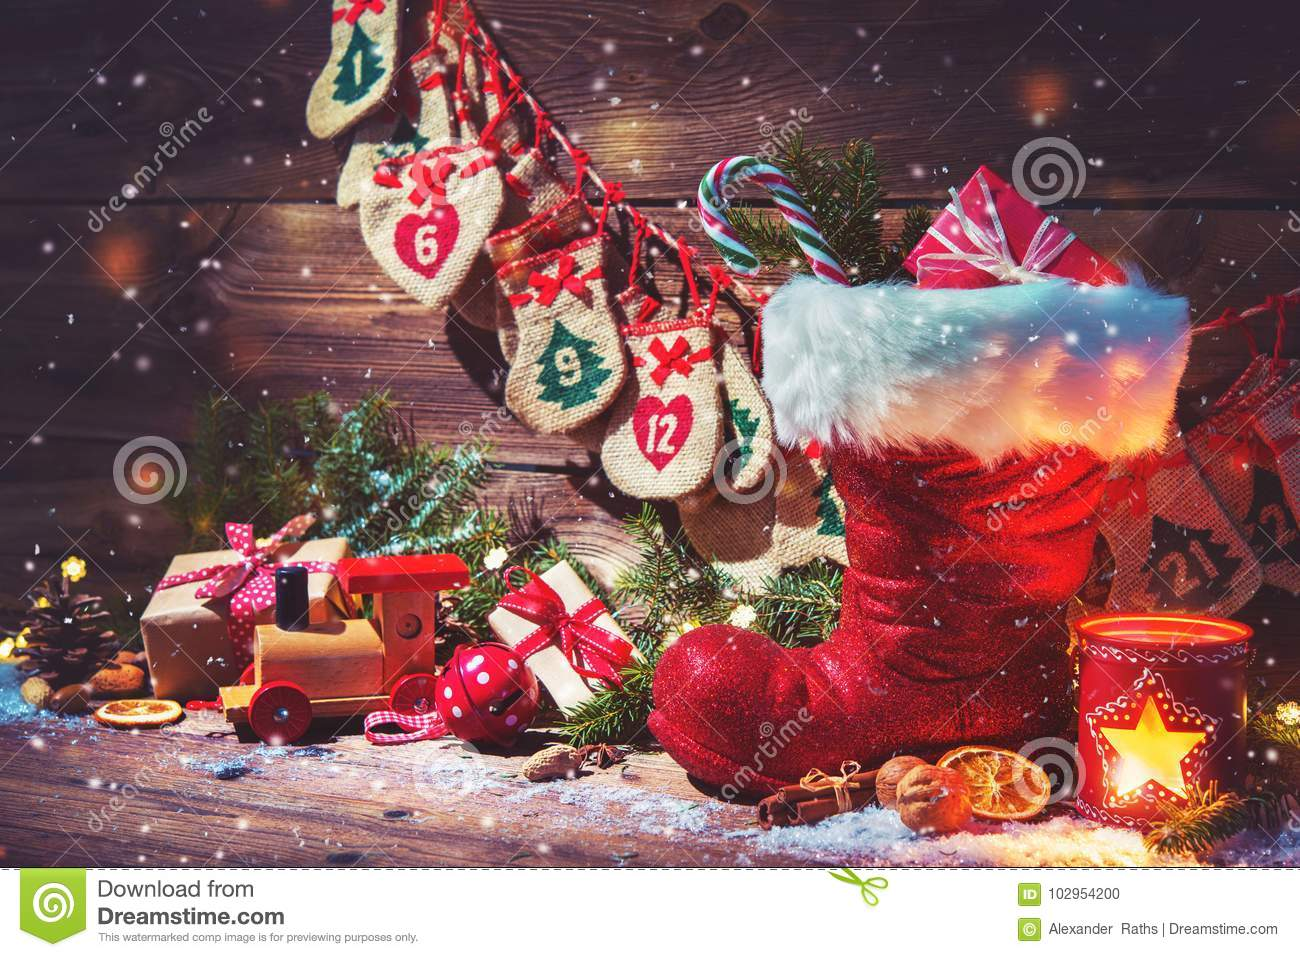 Download Advent Calendar And Santa`s Shoe With Gifts On Rustic Wooden Bac Stock Photo - Image of nicholas, greeting: 102954200